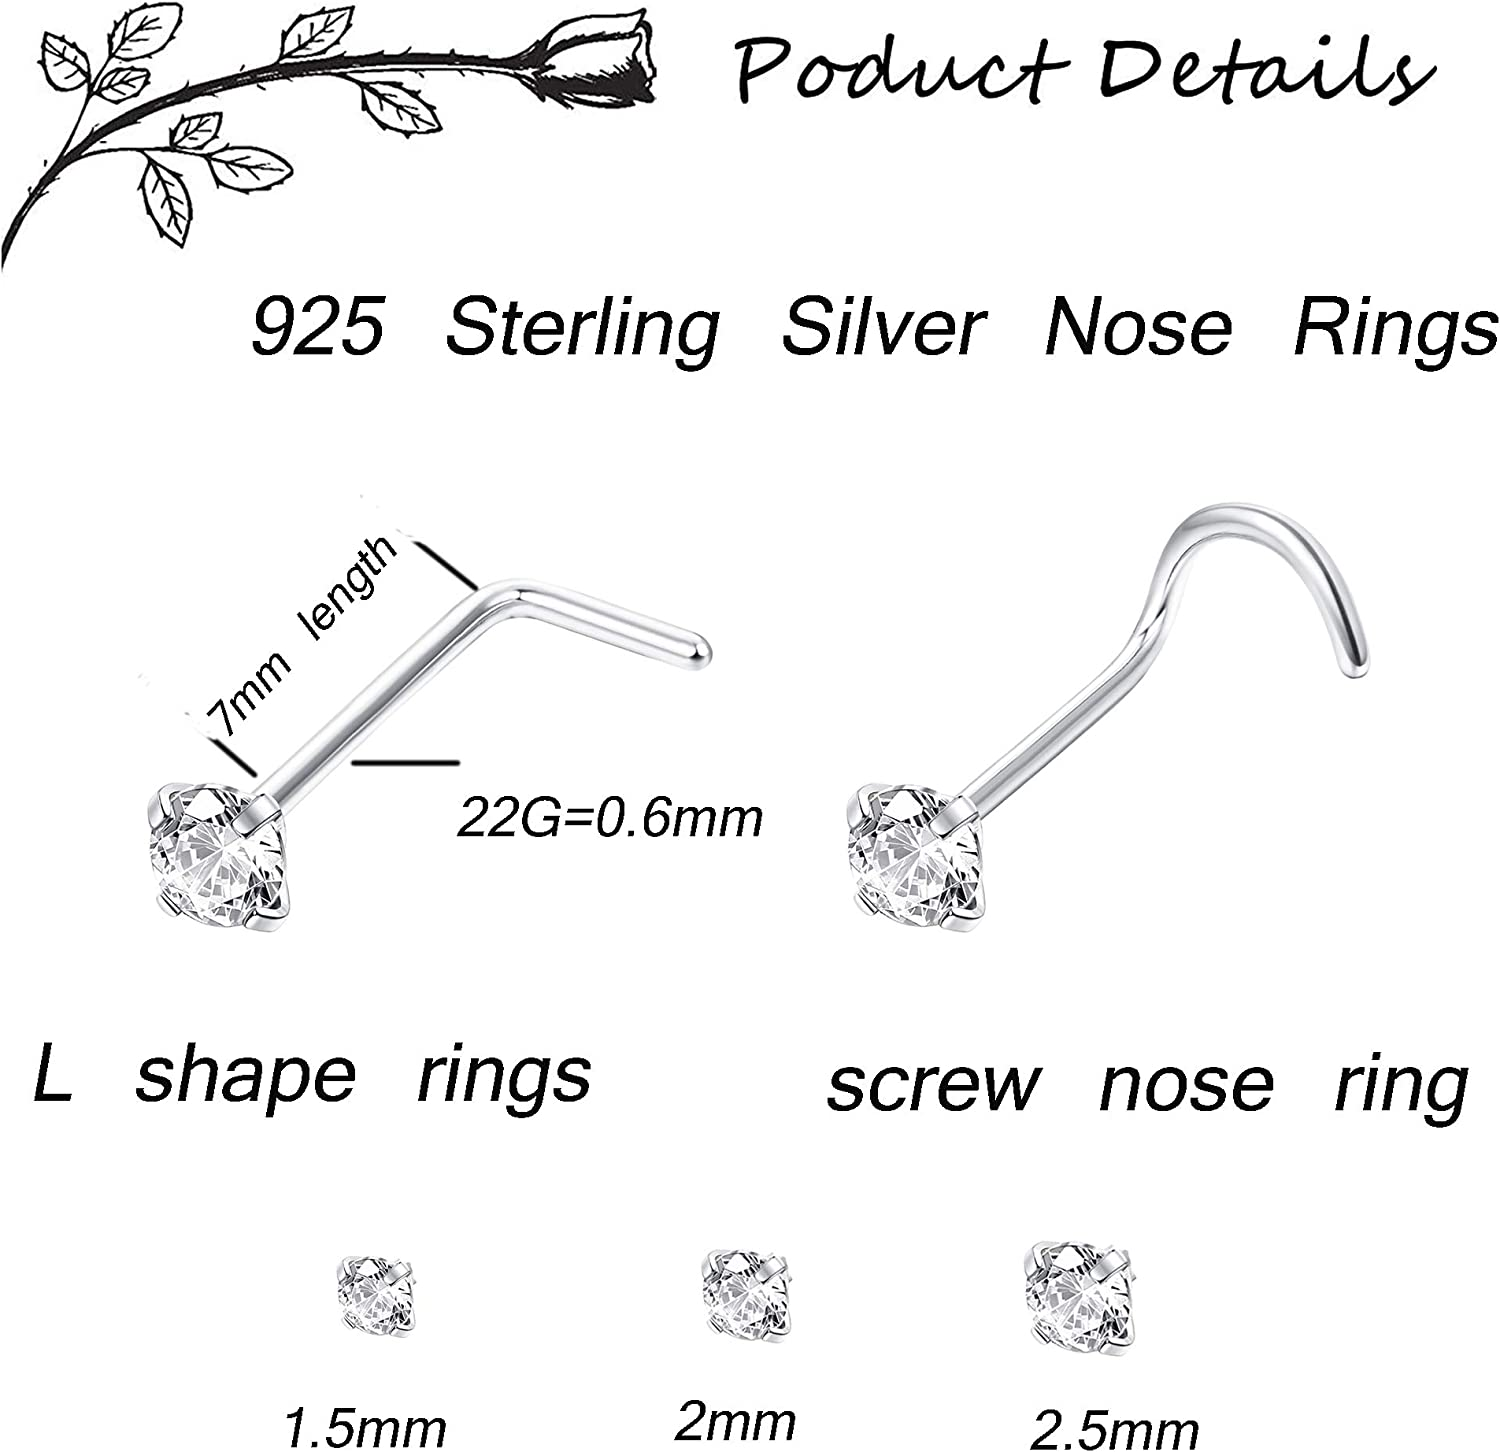 Sllaiss 925 Sterling Silver L Shaped Nose Rings Set For Women Men